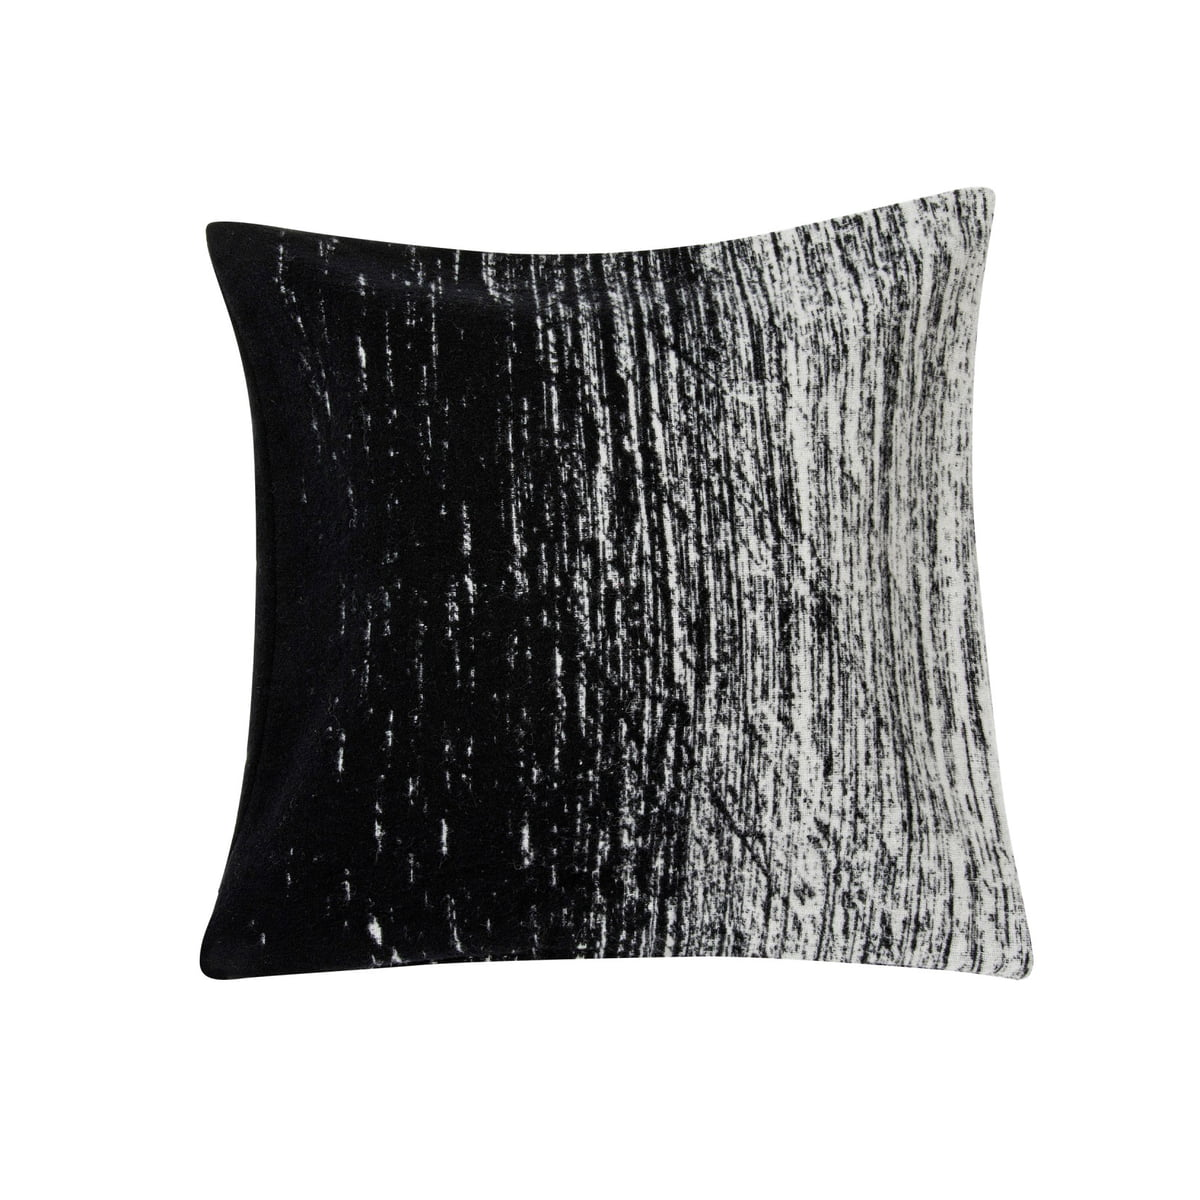 Kuiskaus cushion cover 50x50 black/white